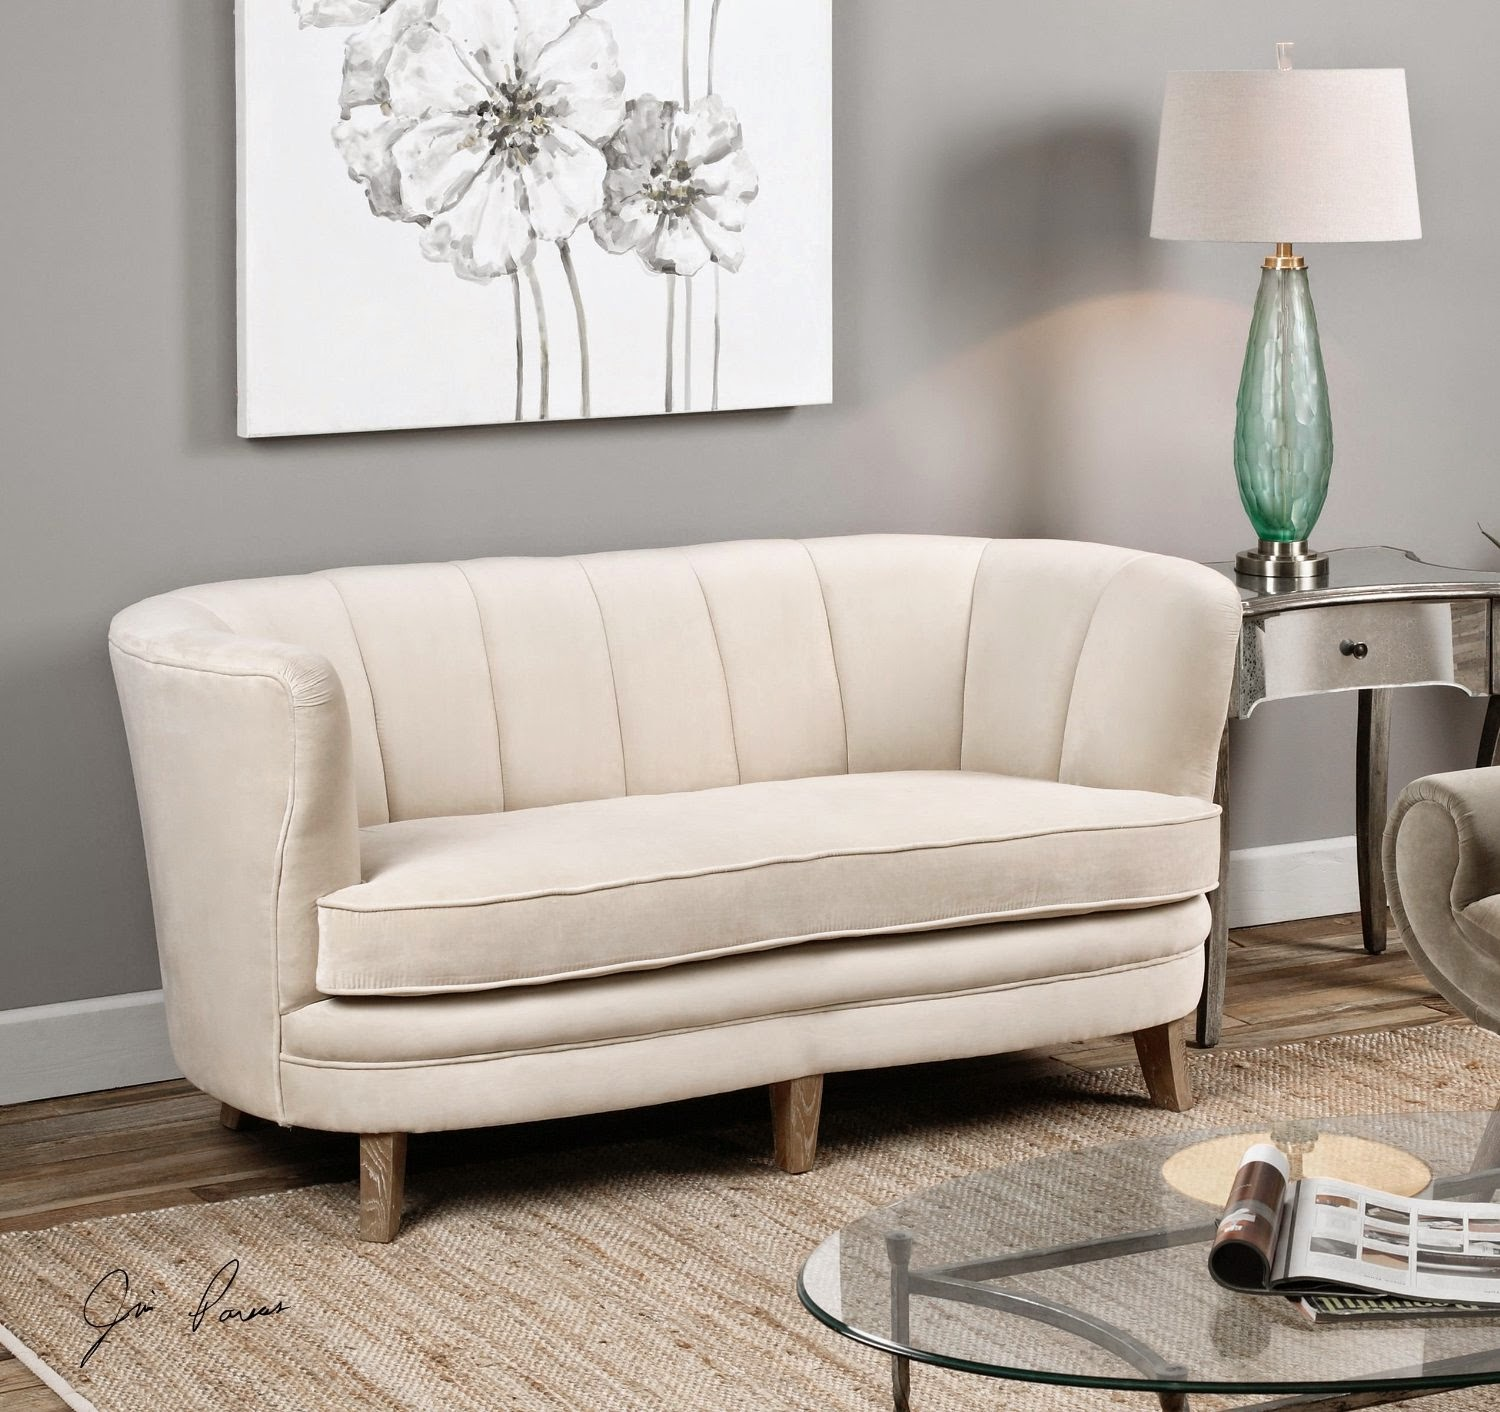 Curved Sofa Sectional Leather: Curved Sofas And Loveseats Reviews: Curved Back Sofa